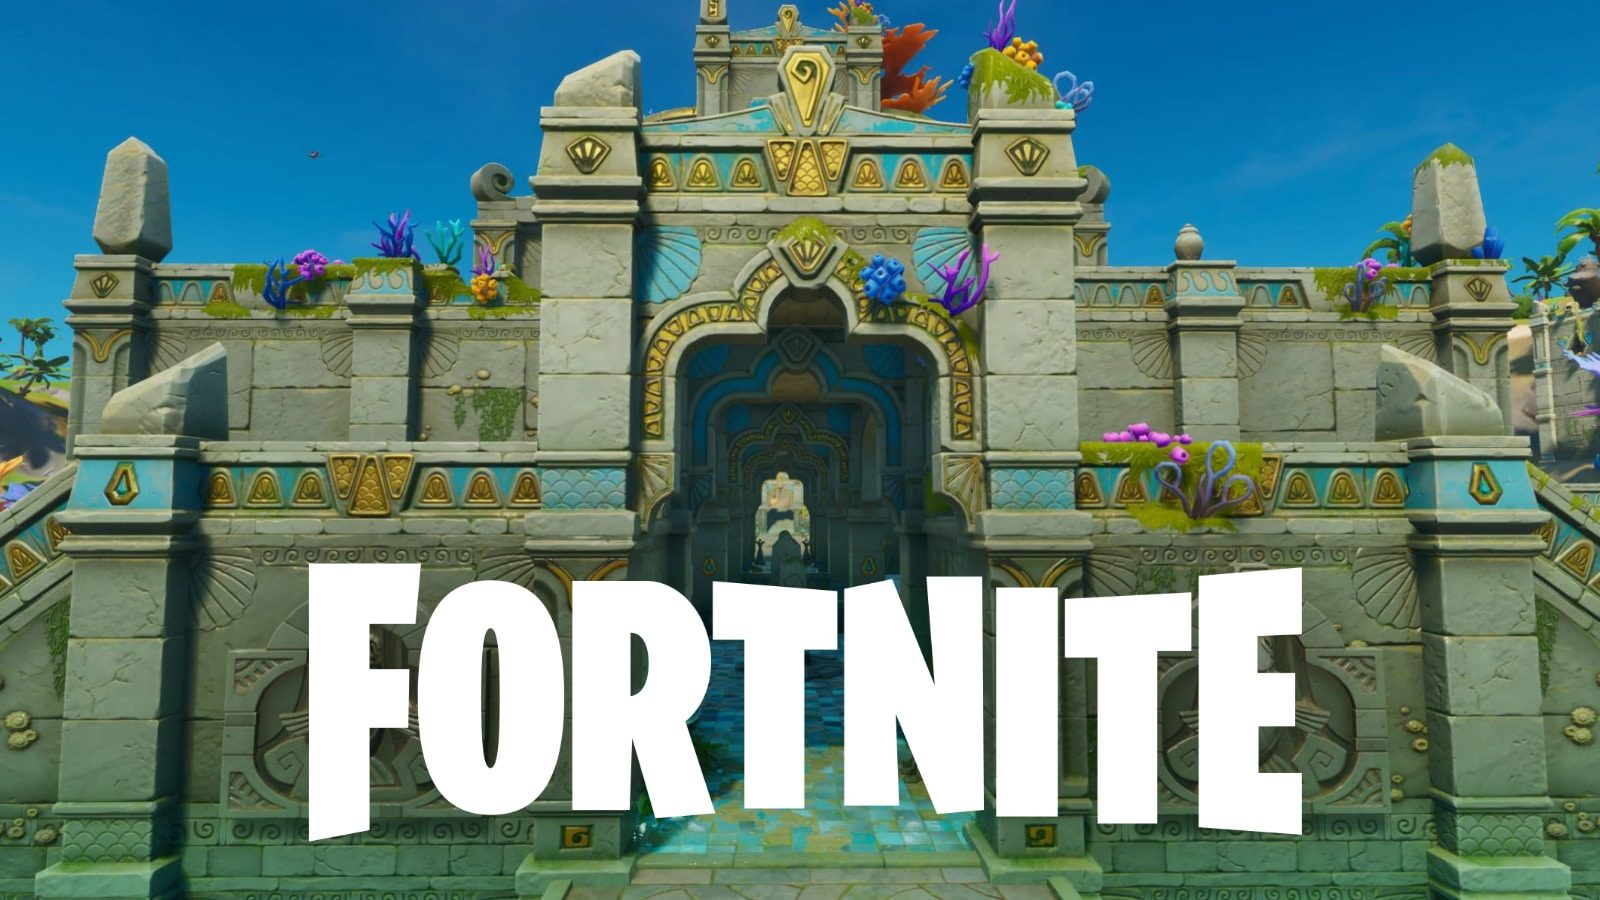 Fortnite Updates Map Which Reveals Coral Castle - mxdwn.com